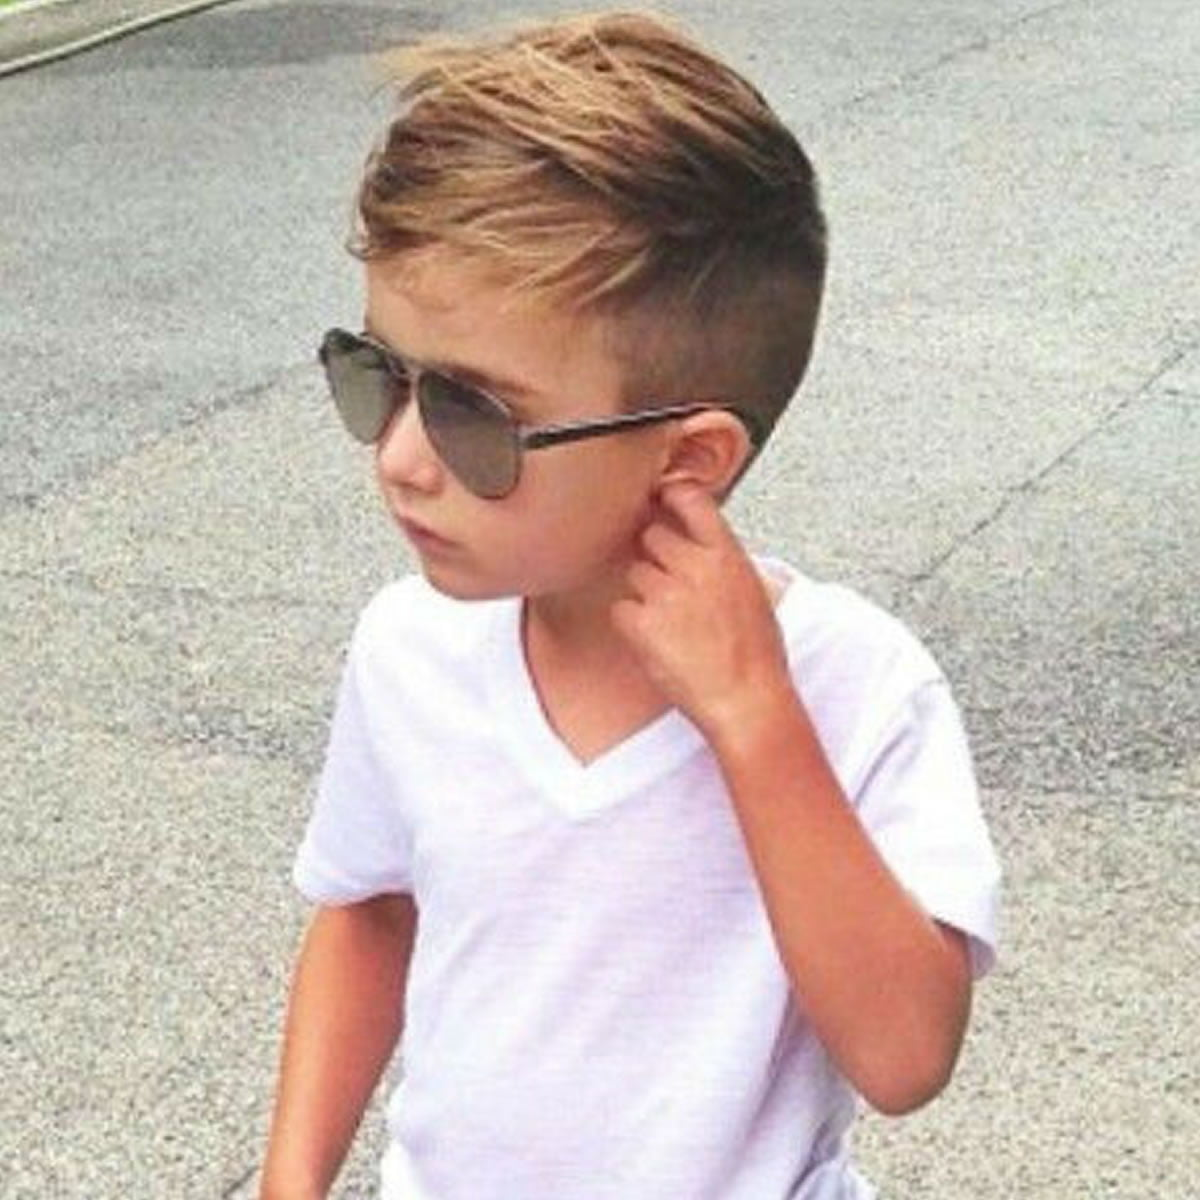 Great Hairstyles And Haircuts Ideas For Little Boys 2018-2019 U2013 Page 4 U2013 HAIRSTYLES